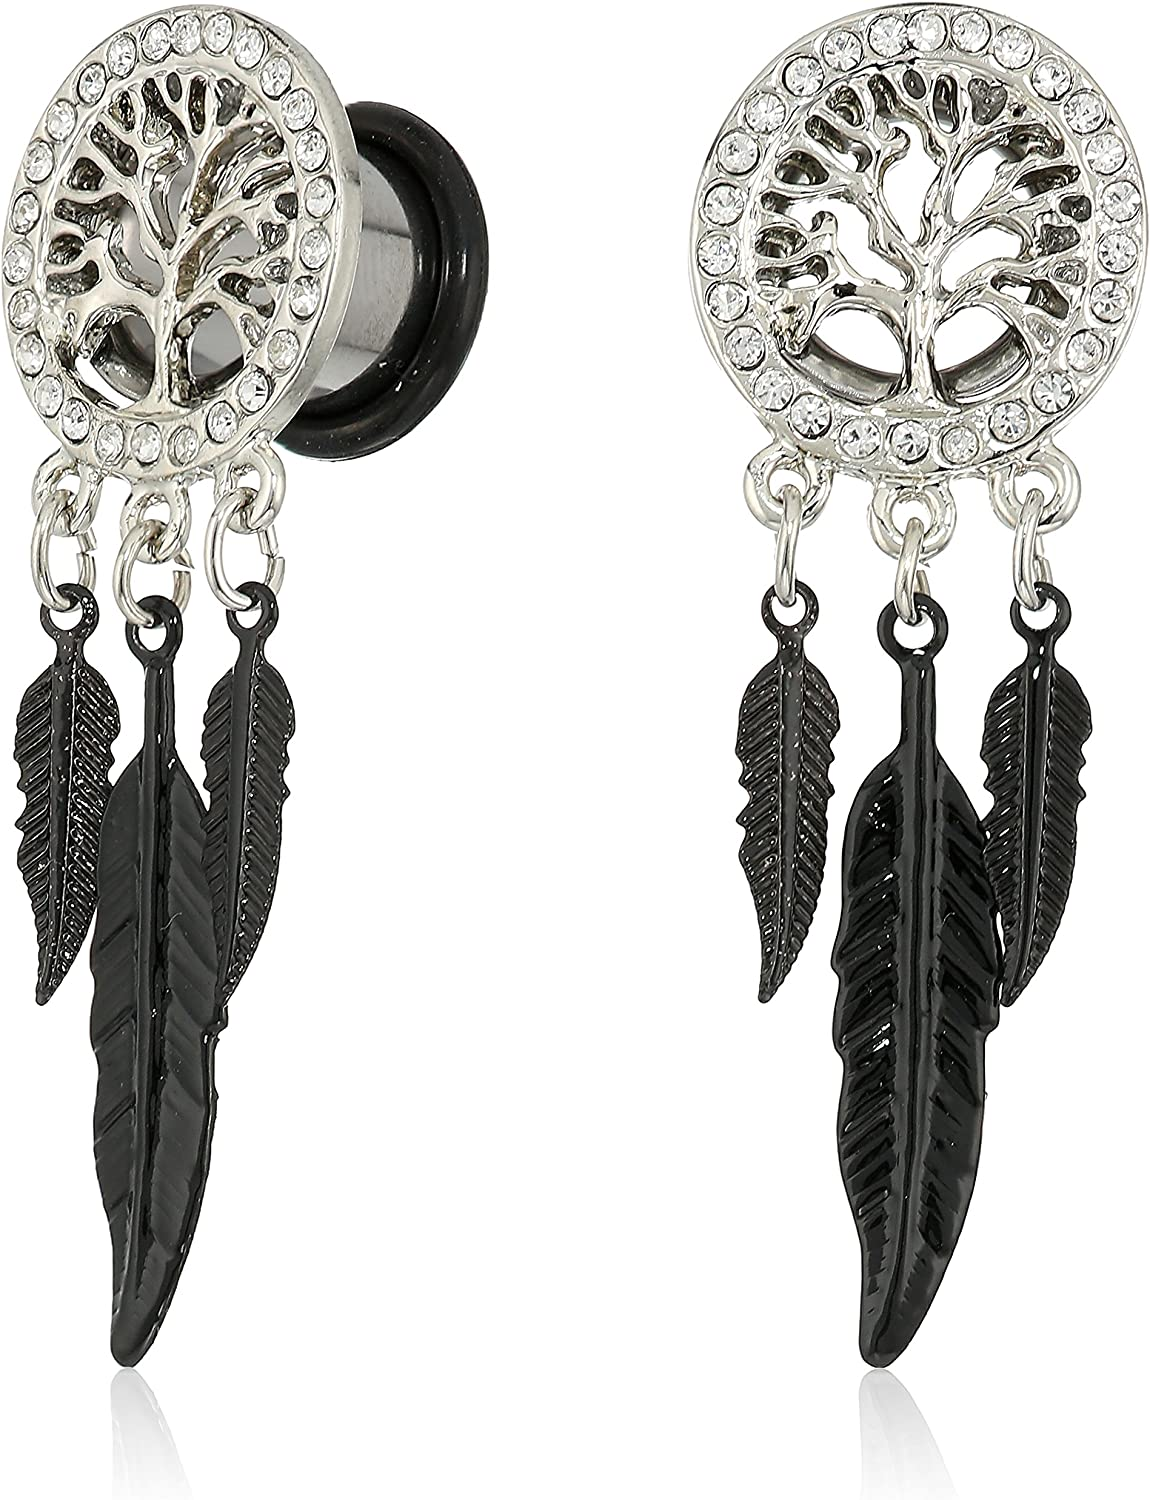 Body Candy Steel Single Flare Clear Accent Tree of Life Feather Dangle Ear Gauge Plug Set 00 Gauge